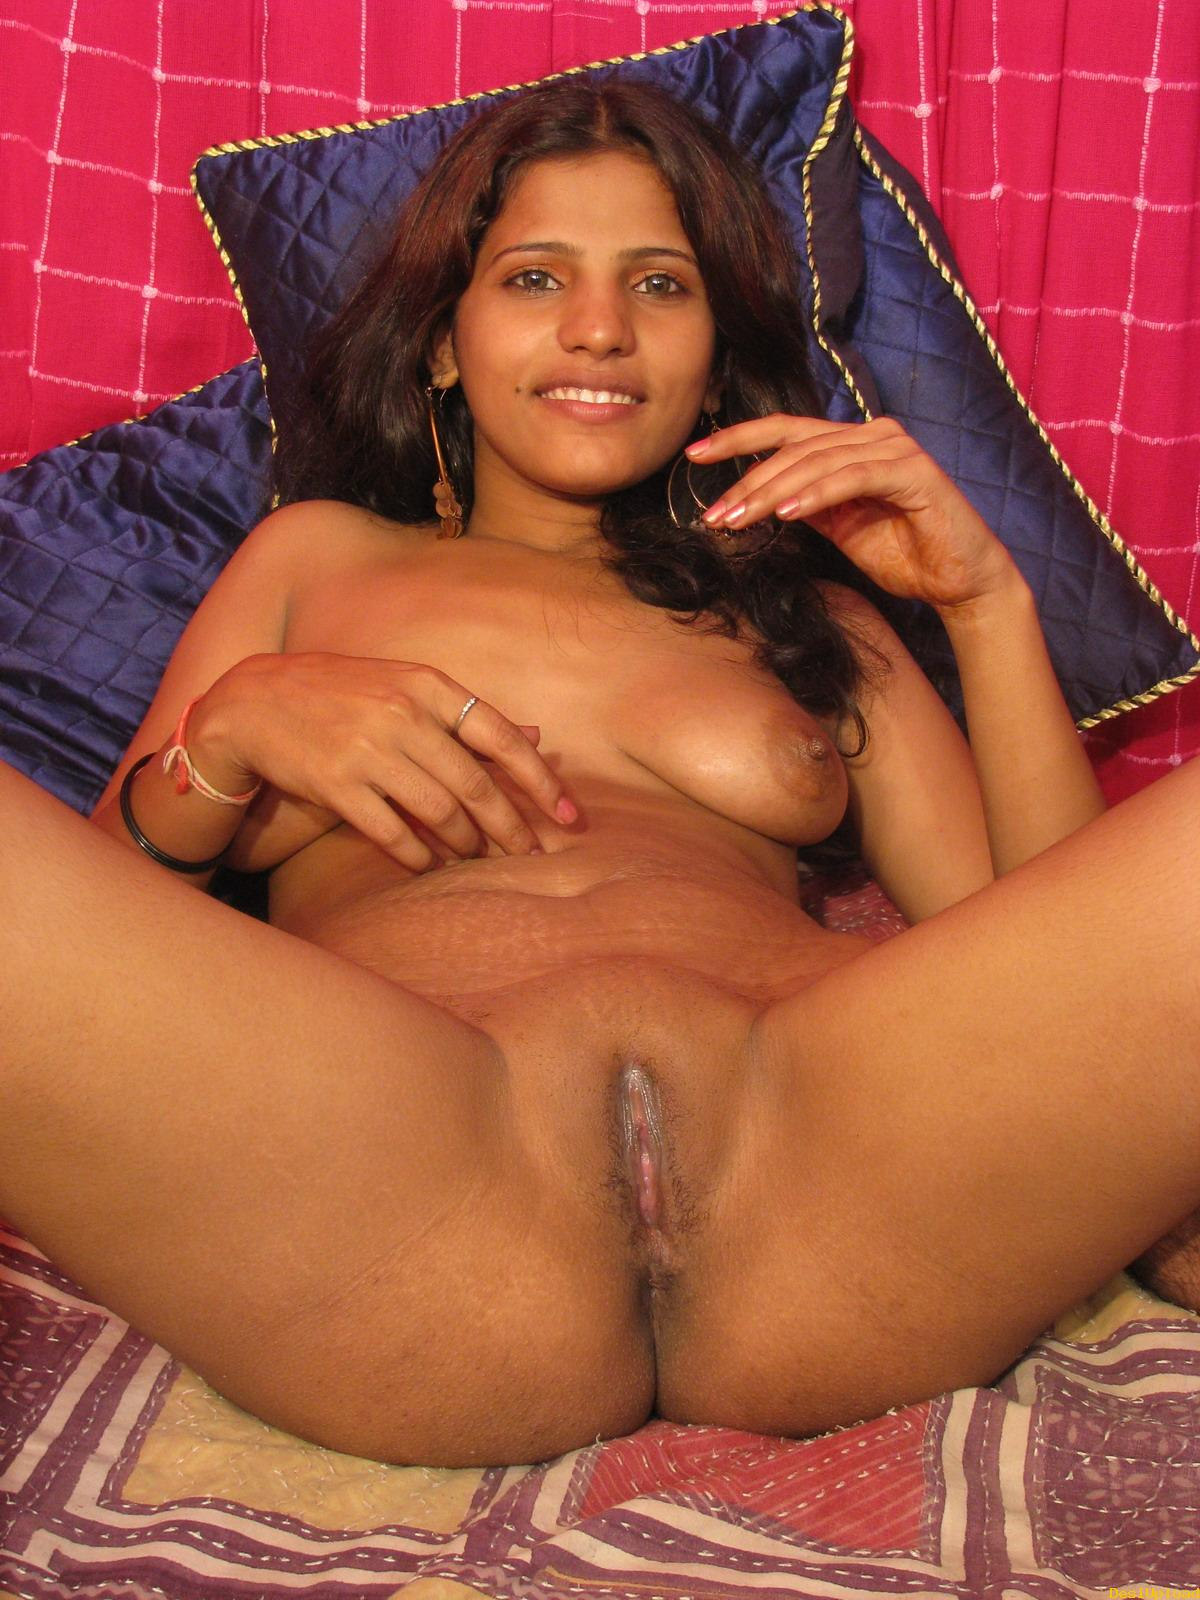 amateur fucking india cute girls